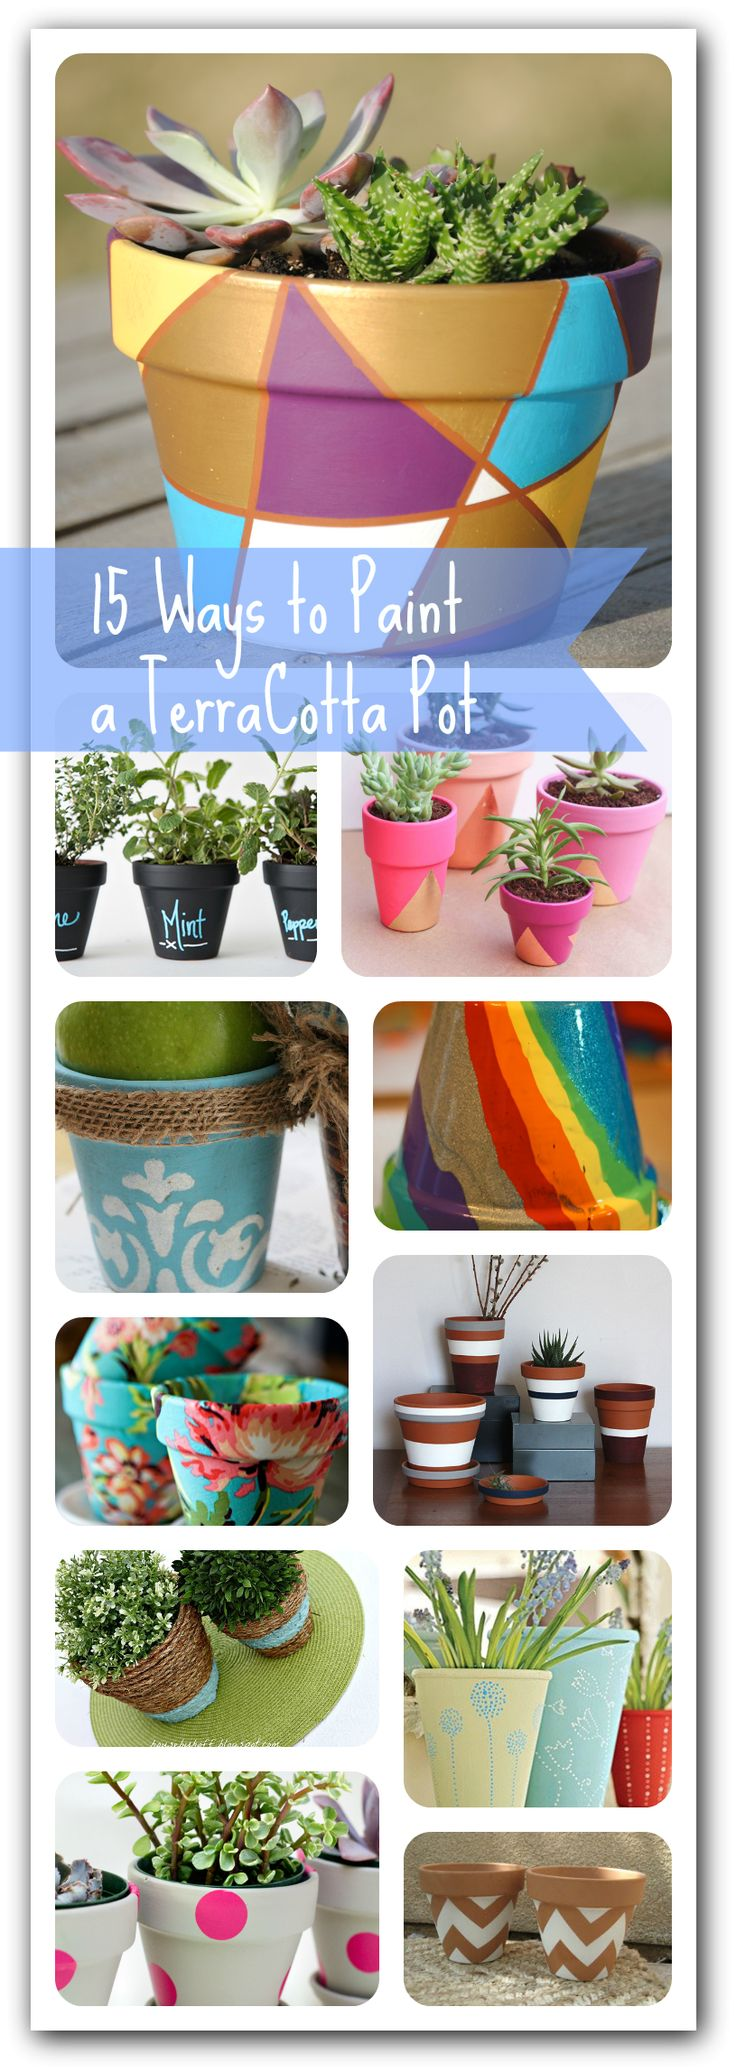 TerraCotta Pot Roundup